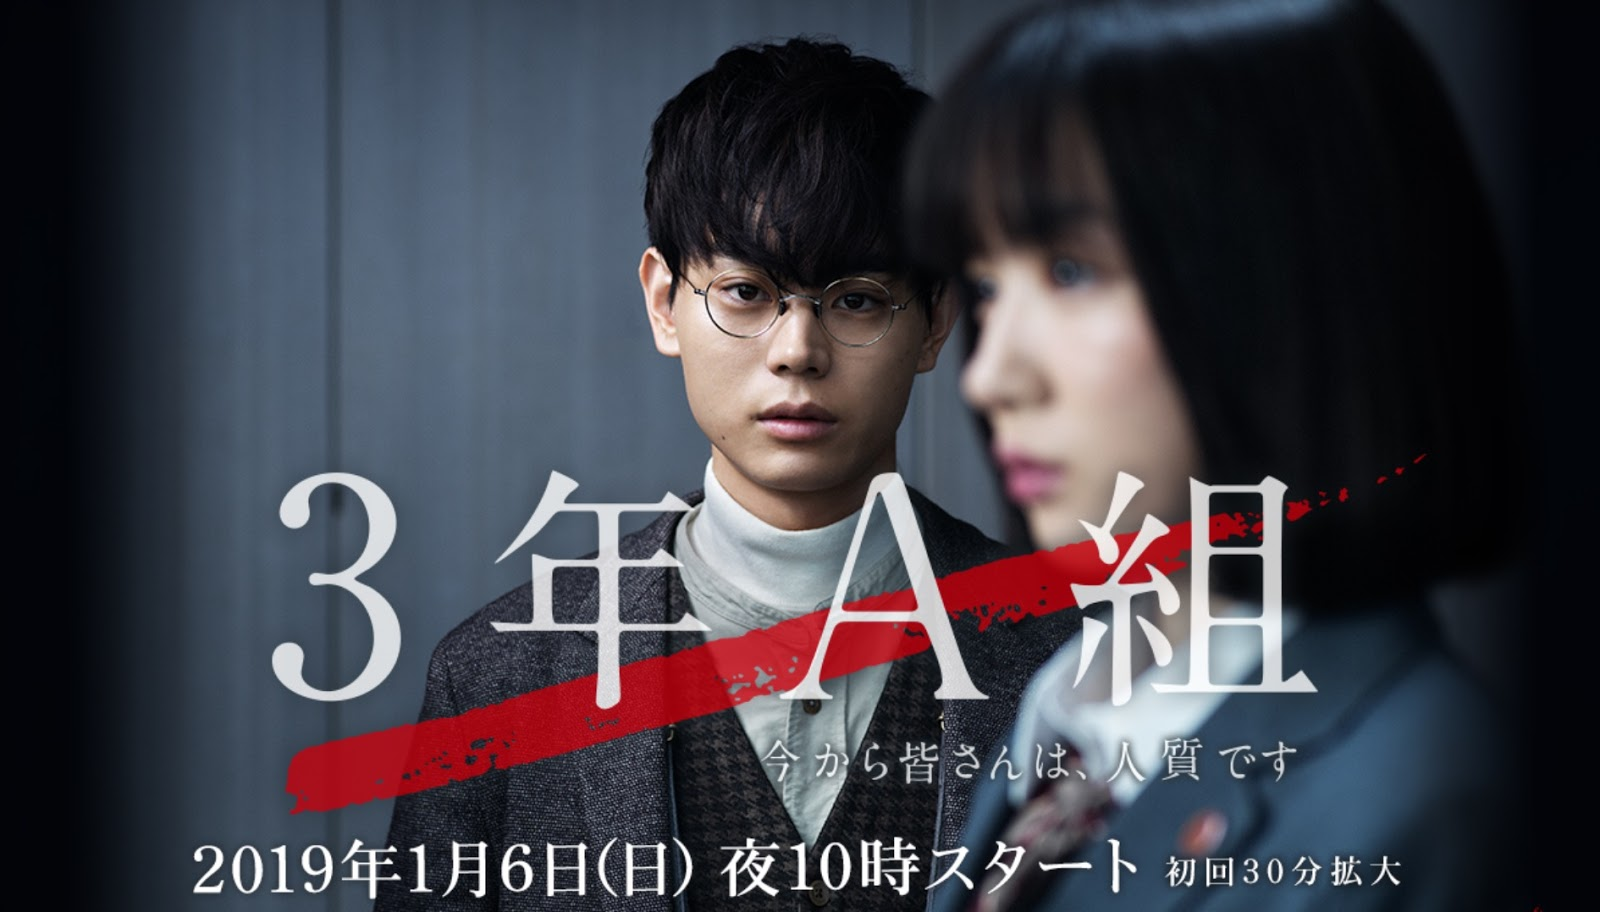 narratage japanese movie eng sub download